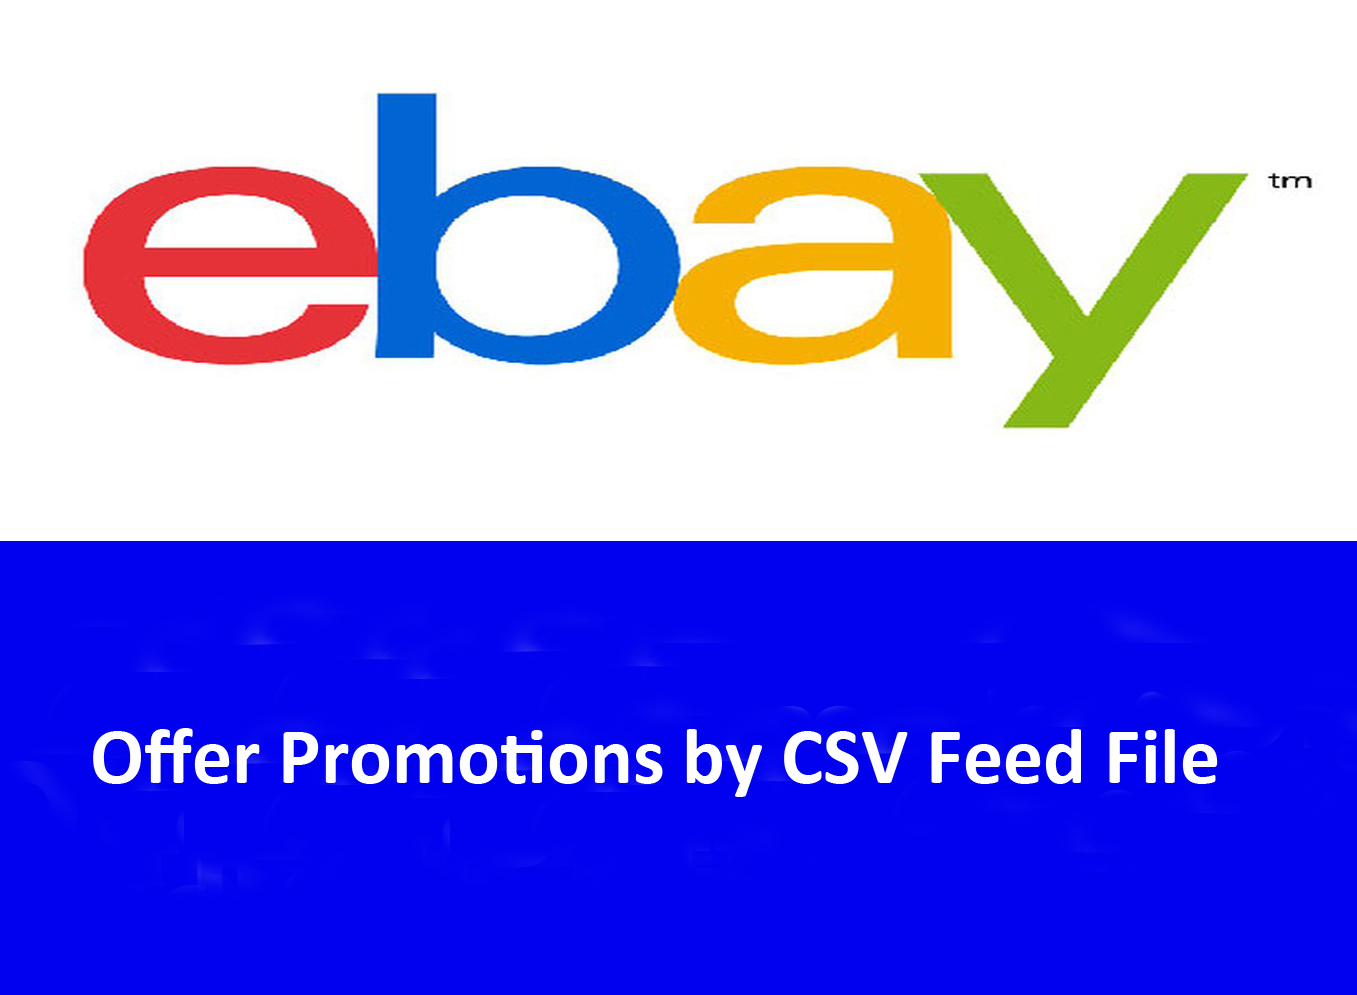 Offer Discount on eBay by Strike-through Price via CSV feed file in Bulk